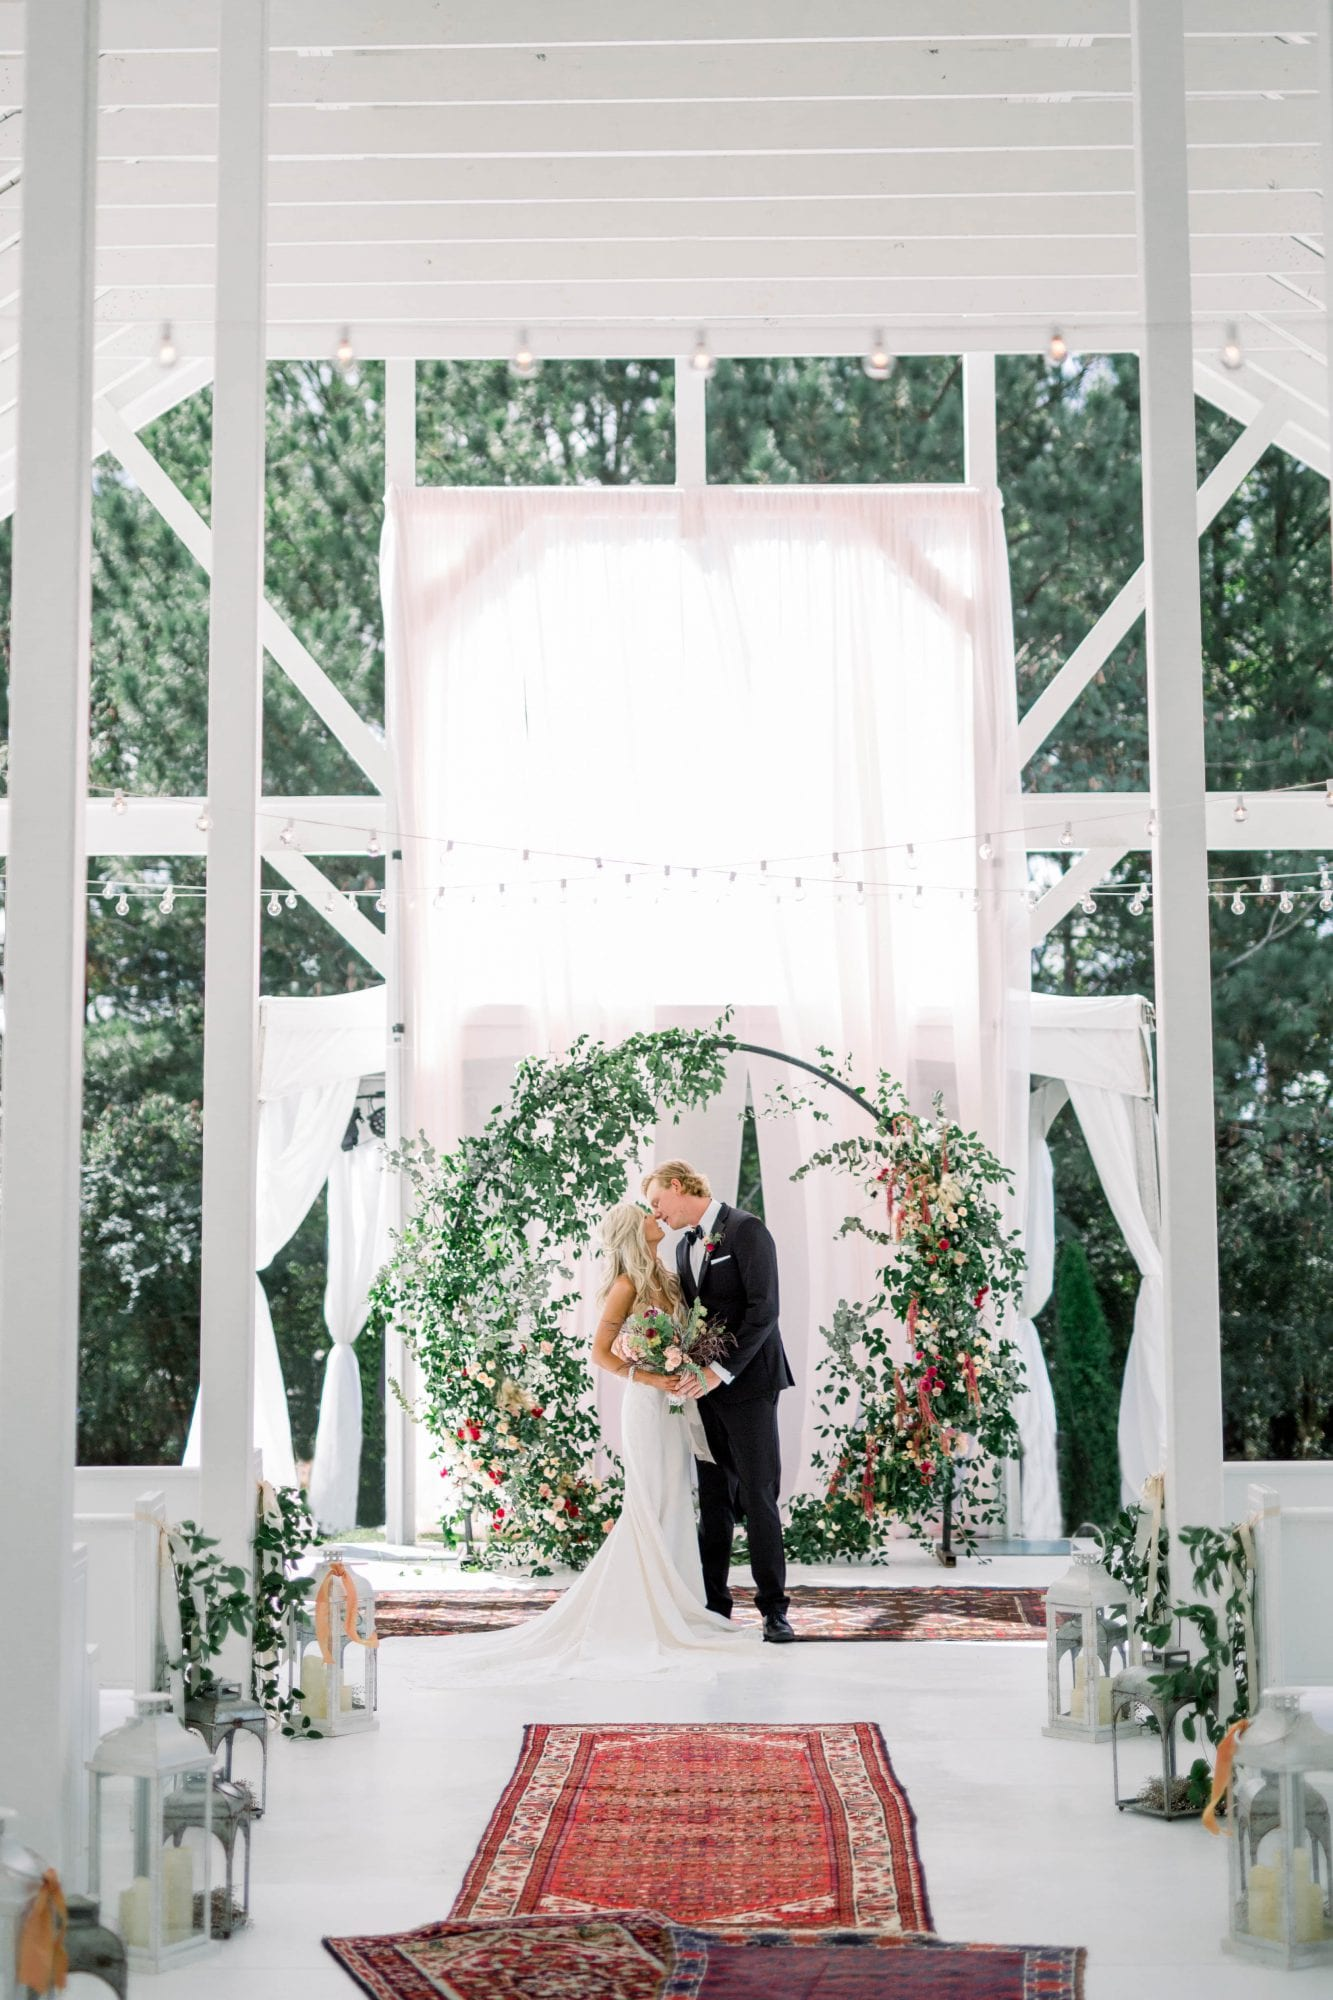 Covered arch & newlyweds